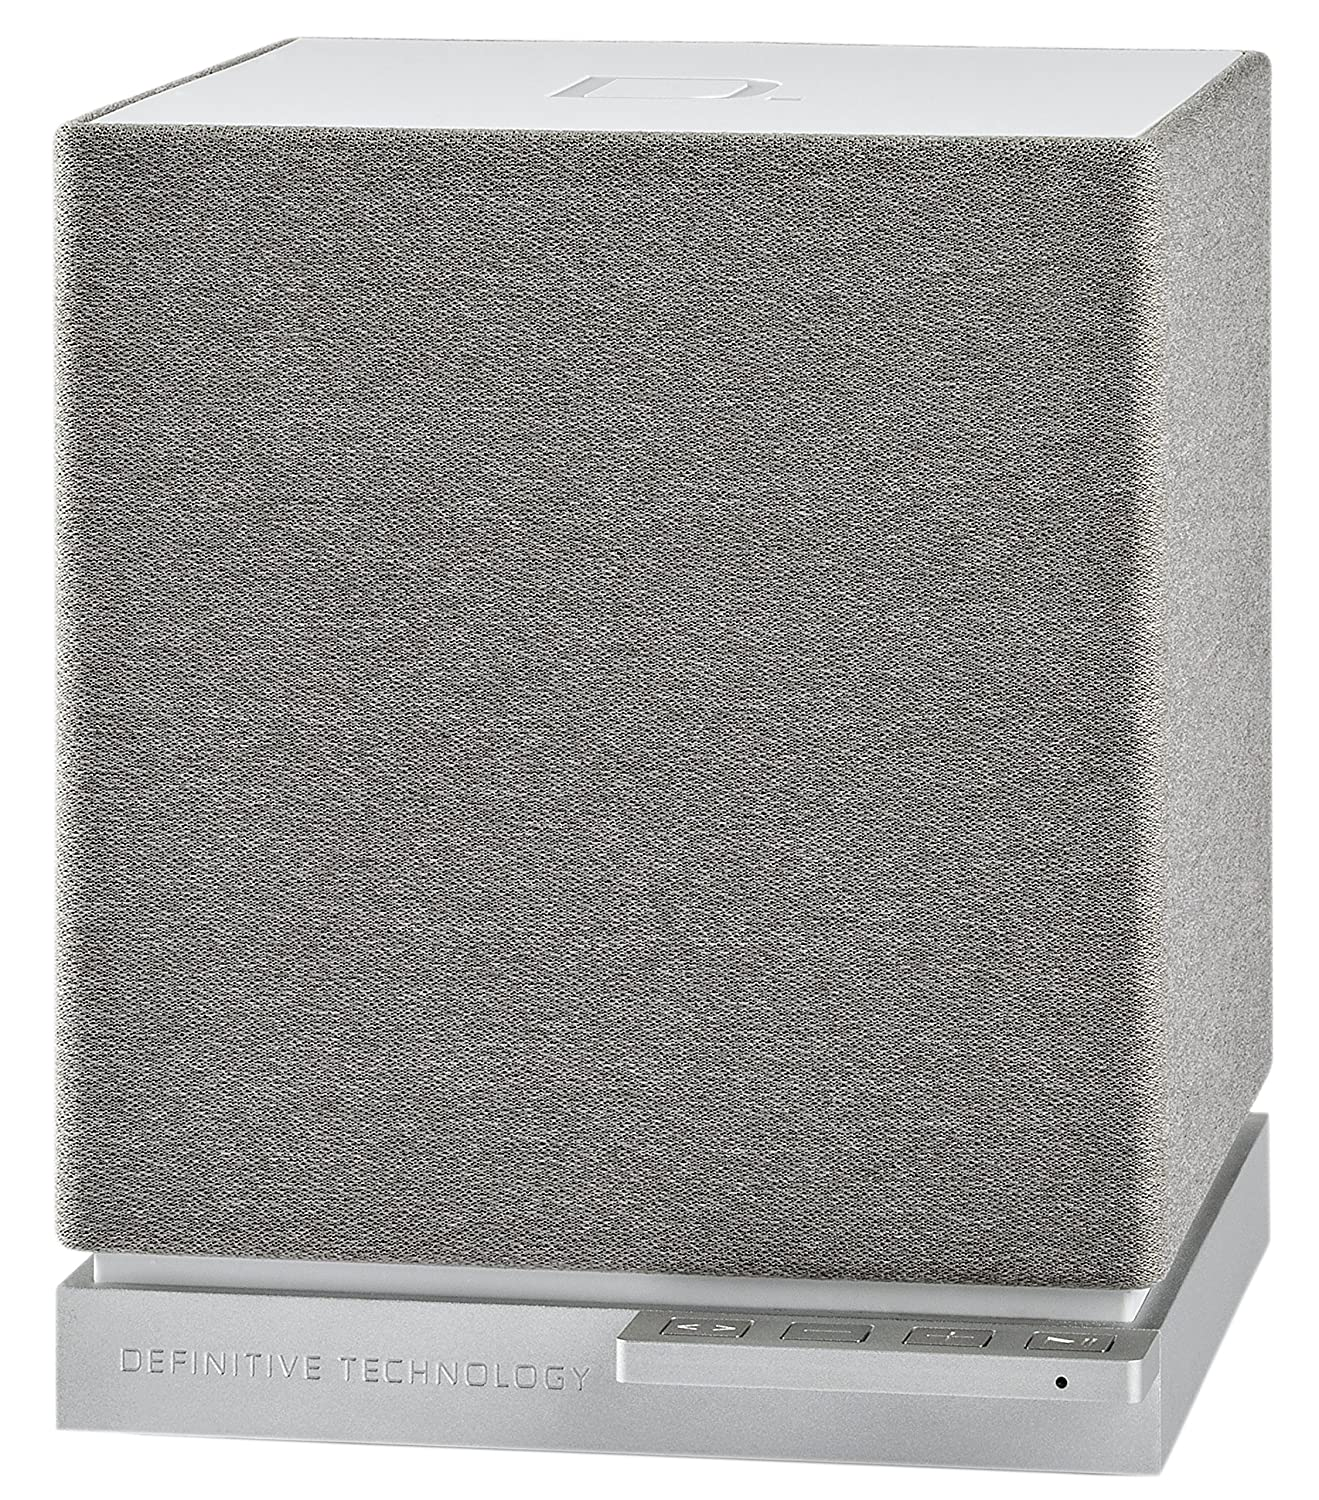 Definitive Technology BIPB-A W 7 2,1 Sistema de Altavoces inalámbrico Blanco